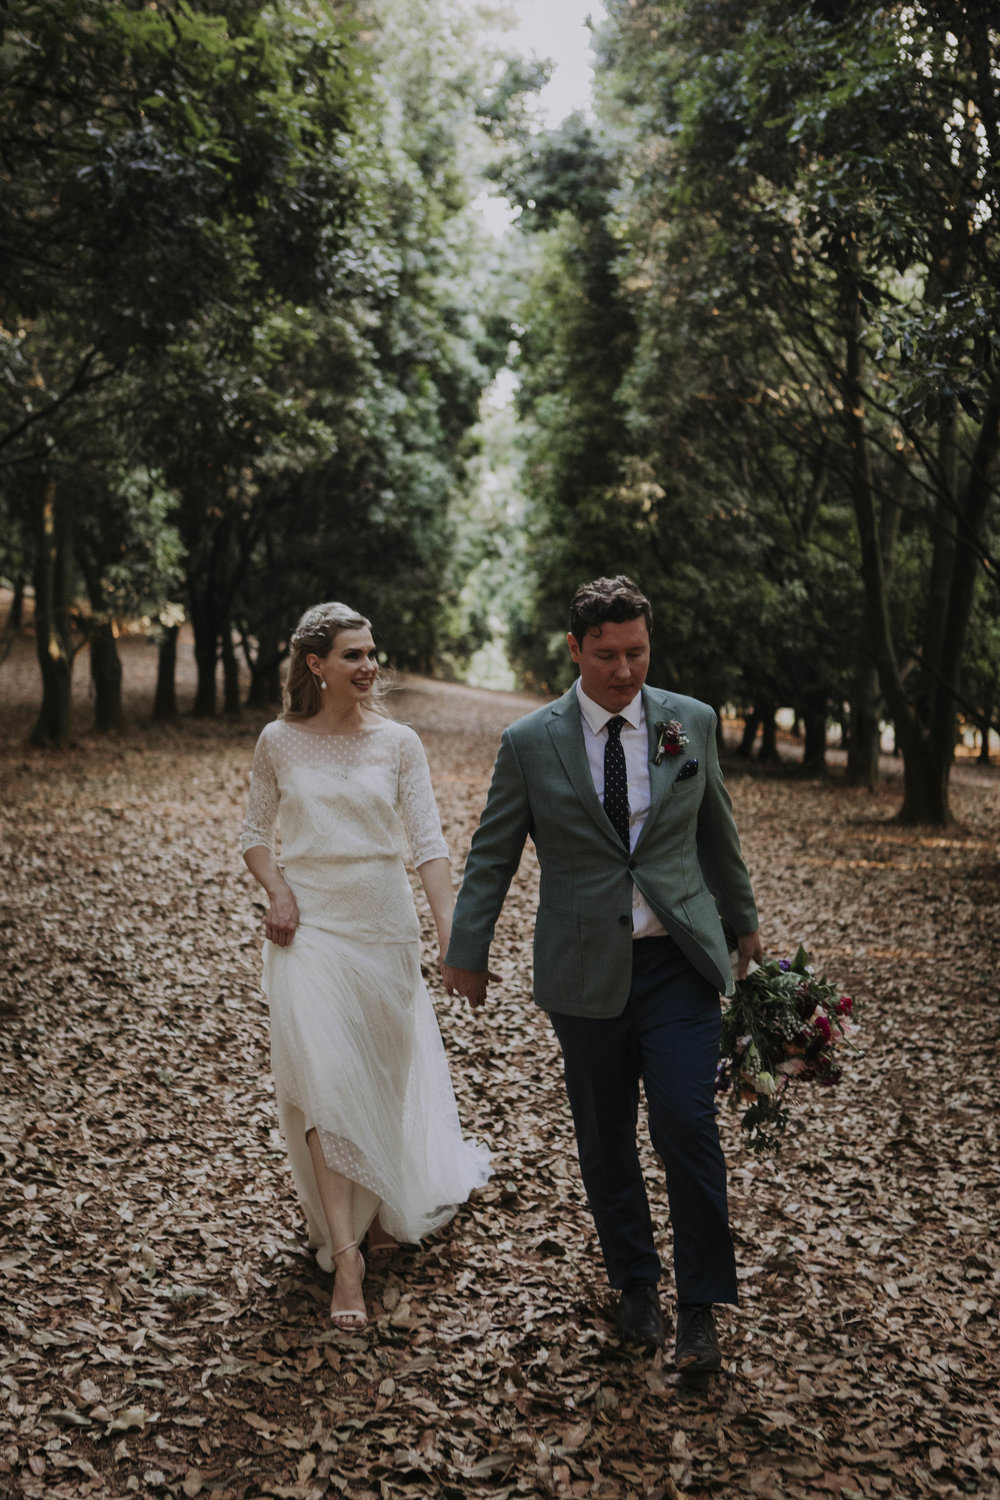 Angela and Sam - So I wanted to say first of all, thank you. Thank you for creating my gown which I could not have been happier with, that contributed to the best day I could have ever imagined! Our wedding in the Byron hinterland was absolute perfection to us. Sam was speechless when he finally saw me walking down the aisle in the dress, beaming like a Cheshire cat. I was so nervous leading up to the day, but when I woke up on the morning of the wedding and started getting ready I was bizarrely calm (for me) and as soon as I slipped into that polka-dot tulle and lace I felt so comfortable and I just knew that no matter what happened from that point on, the day would be magic because I felt 100% myself... but an even better version! So thank you for helping to create that magic. The whole journey with you in the gown creation was so much fun, I looked forward to each appointment with such anticipation and enjoyed the dress being revealed a little bit more with each fitting - I shall carry those fond memories with me forever, so thank you again!Angela Barbeler